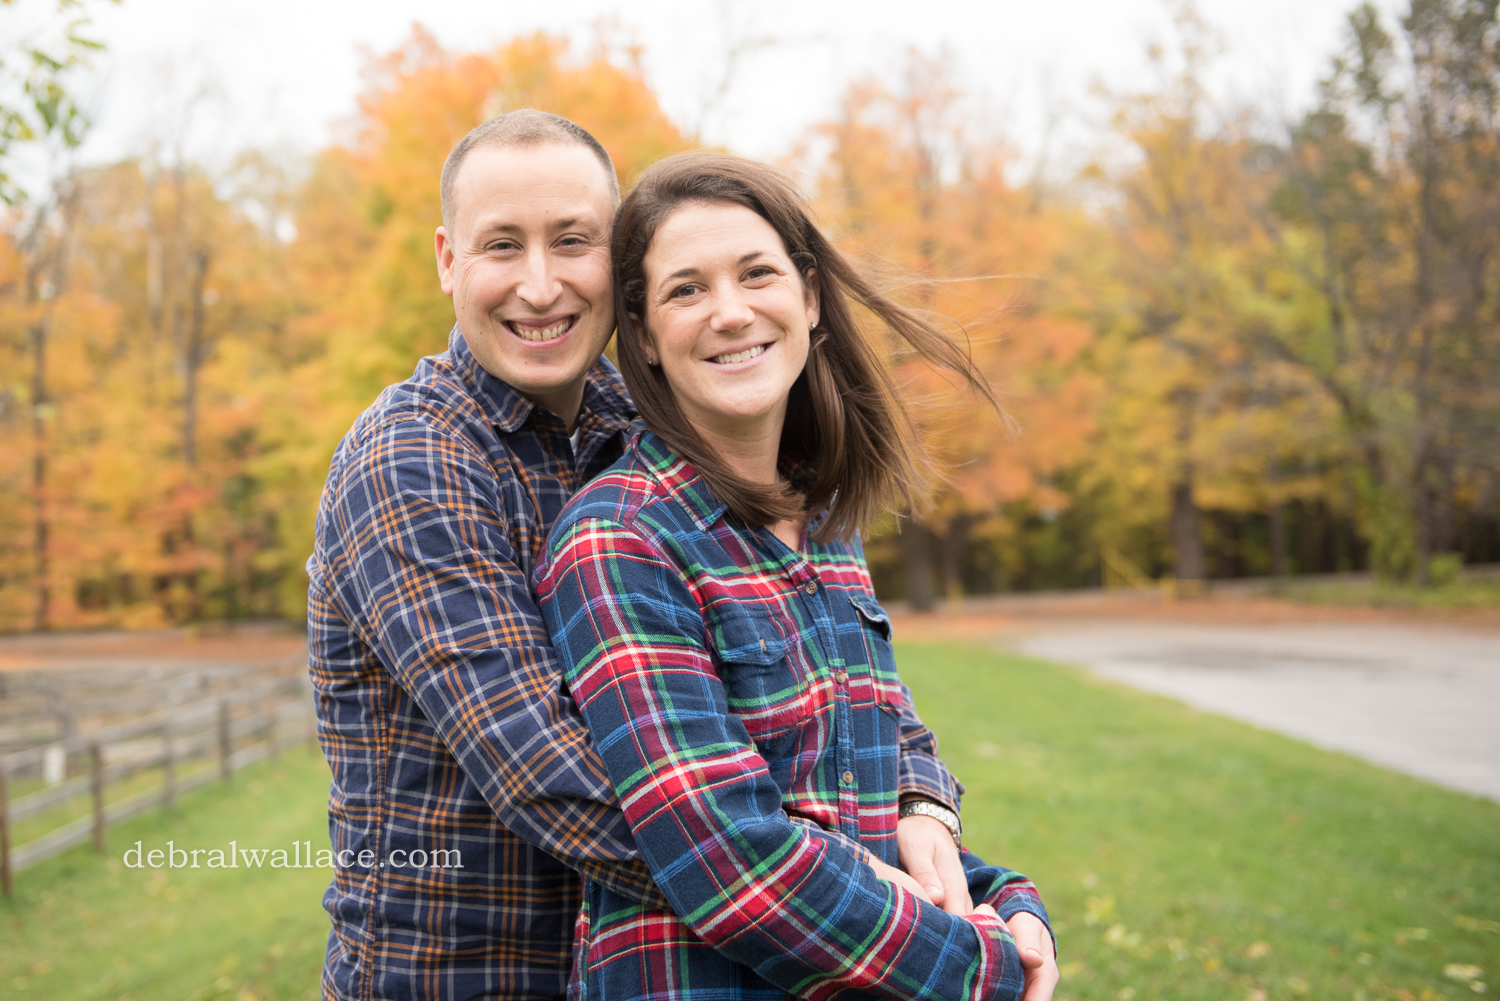 Mendon Ponds Family Photos